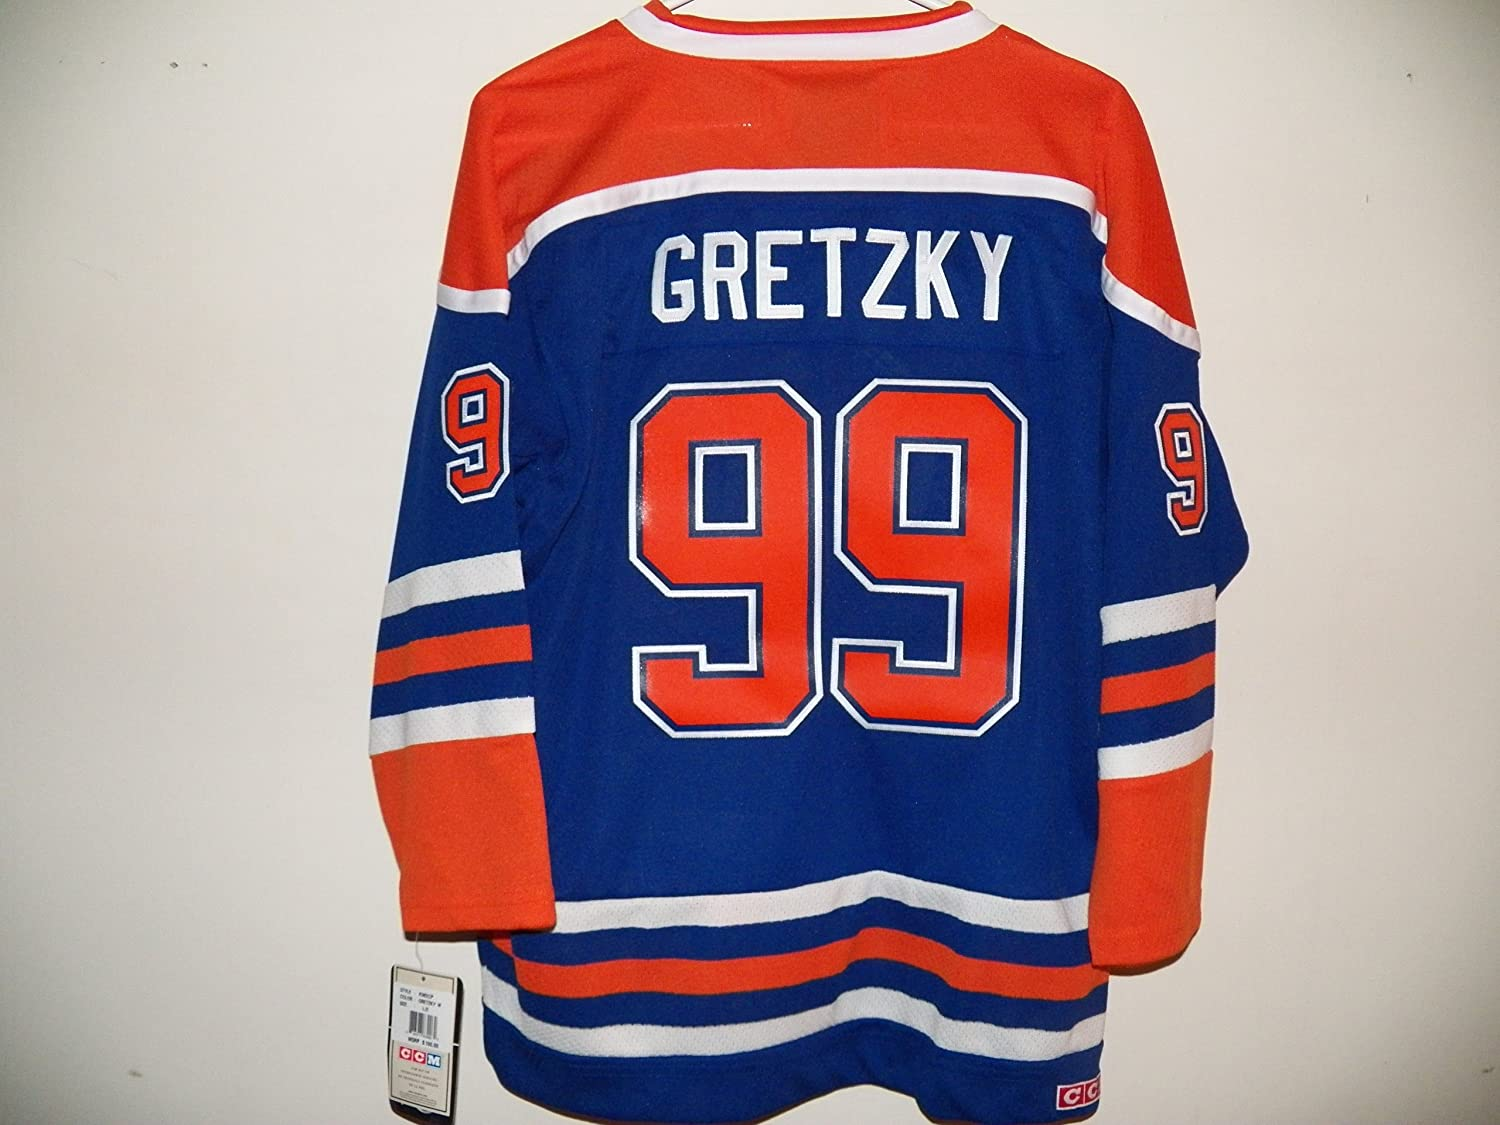 finest selection 003ed 831e2 CCM Throwback Wayne Gretsky Jersey, Edmonton Oilers #99 Heroes of Hockey,  Youth